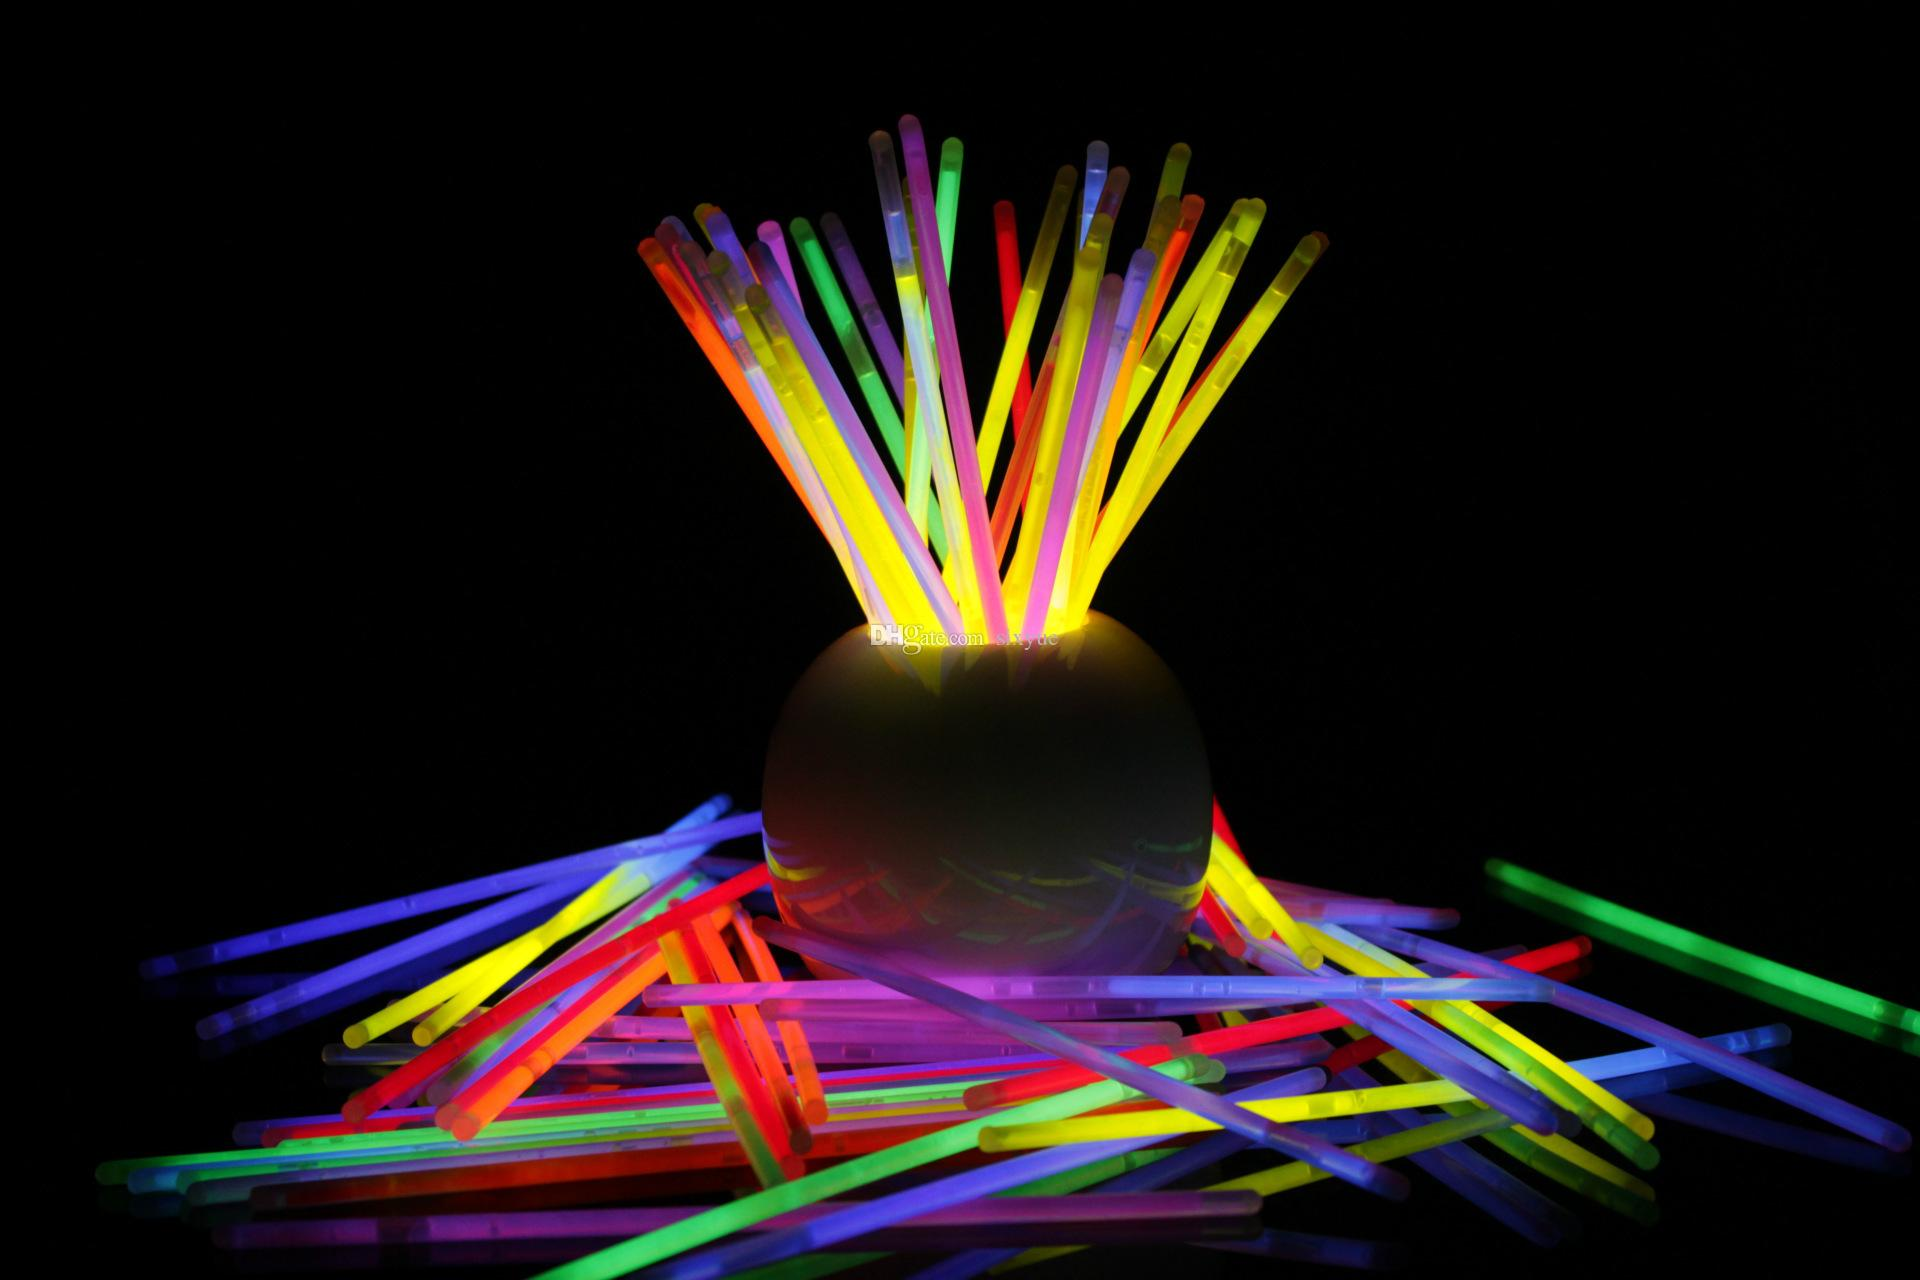 sticks with fun have children are ways stick in much glow dark love activities ideas to the so these light